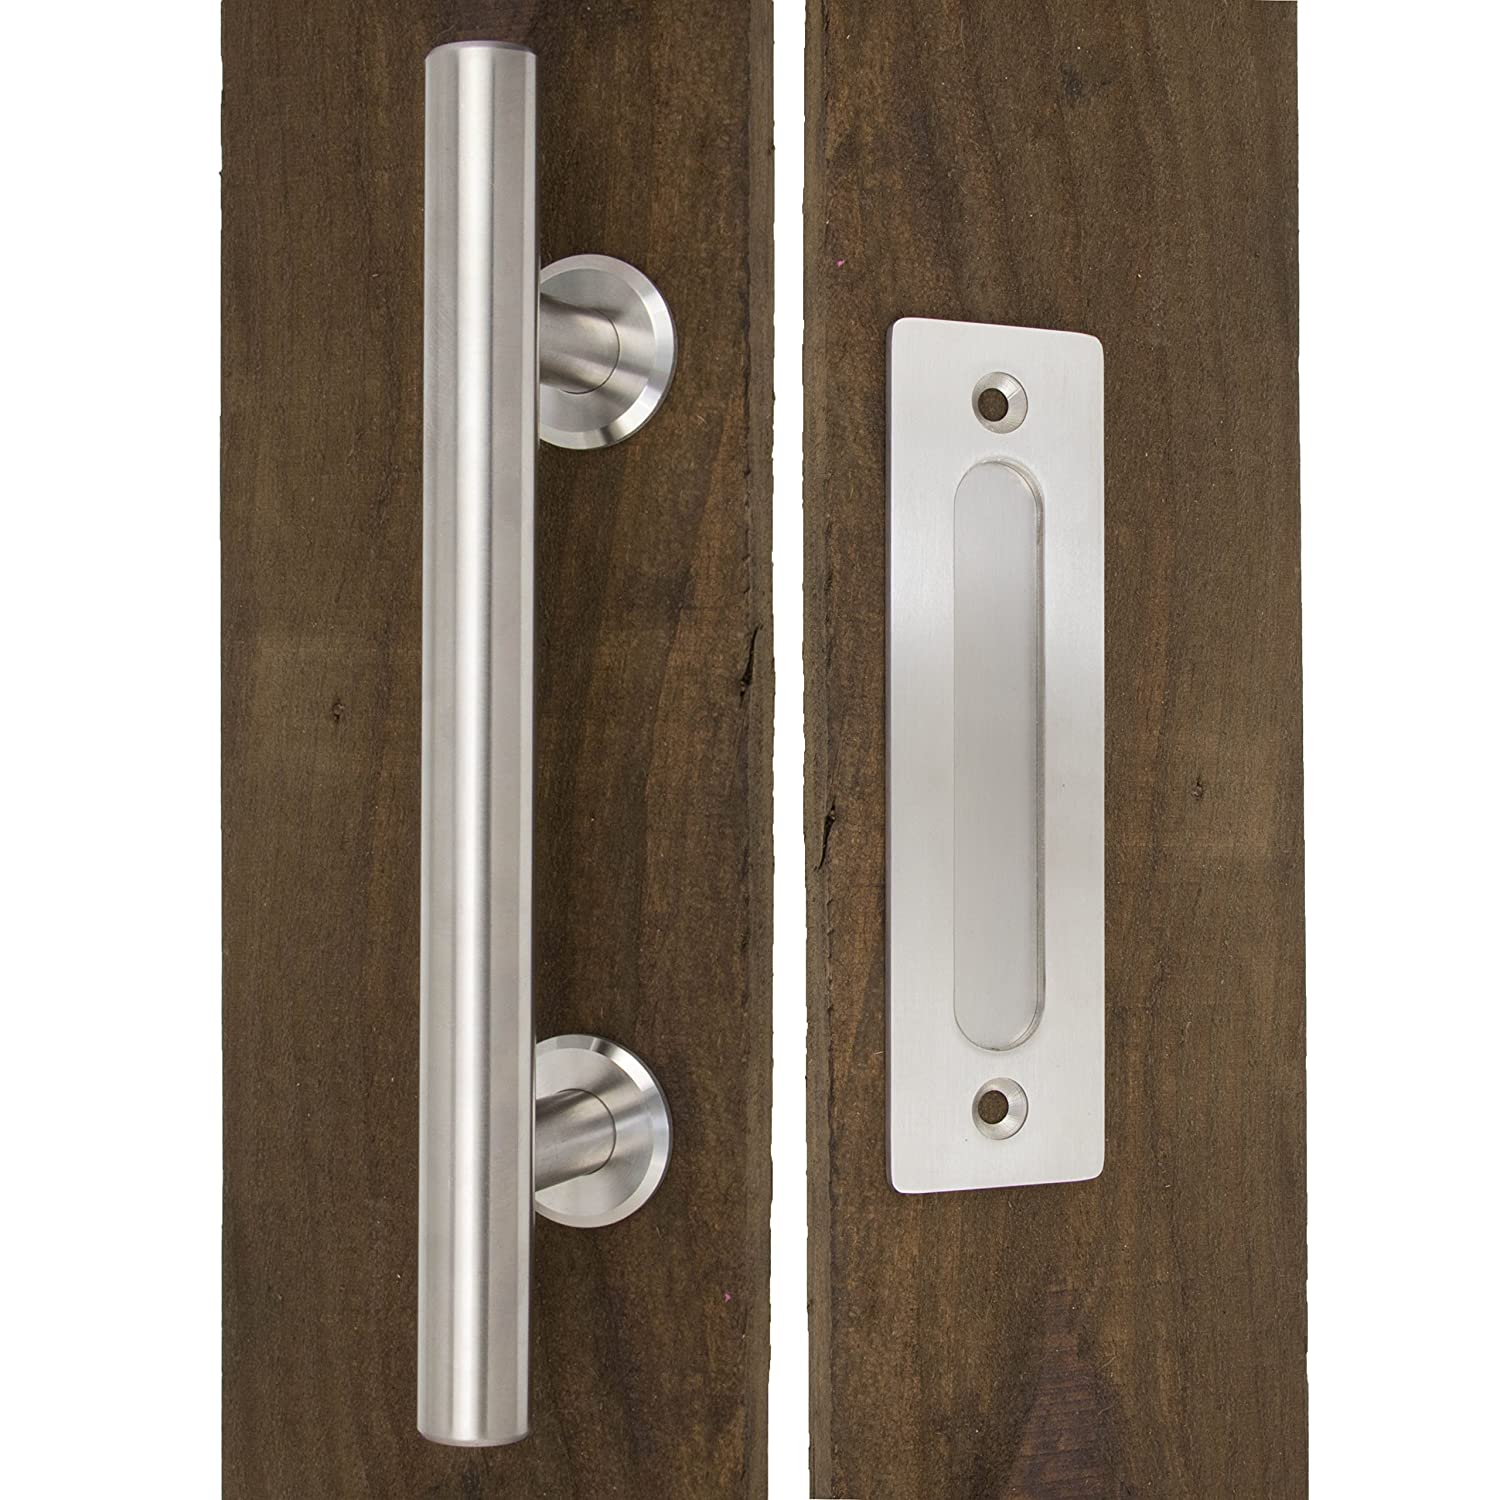 """Set Includes Both the Handle for Exterior of Door and the Flush Pull for Interior Modern Barn Door Hardware Handle by CharmedLife - Large Stainless Steel Sliding Barn Door Handle 12/"""""""